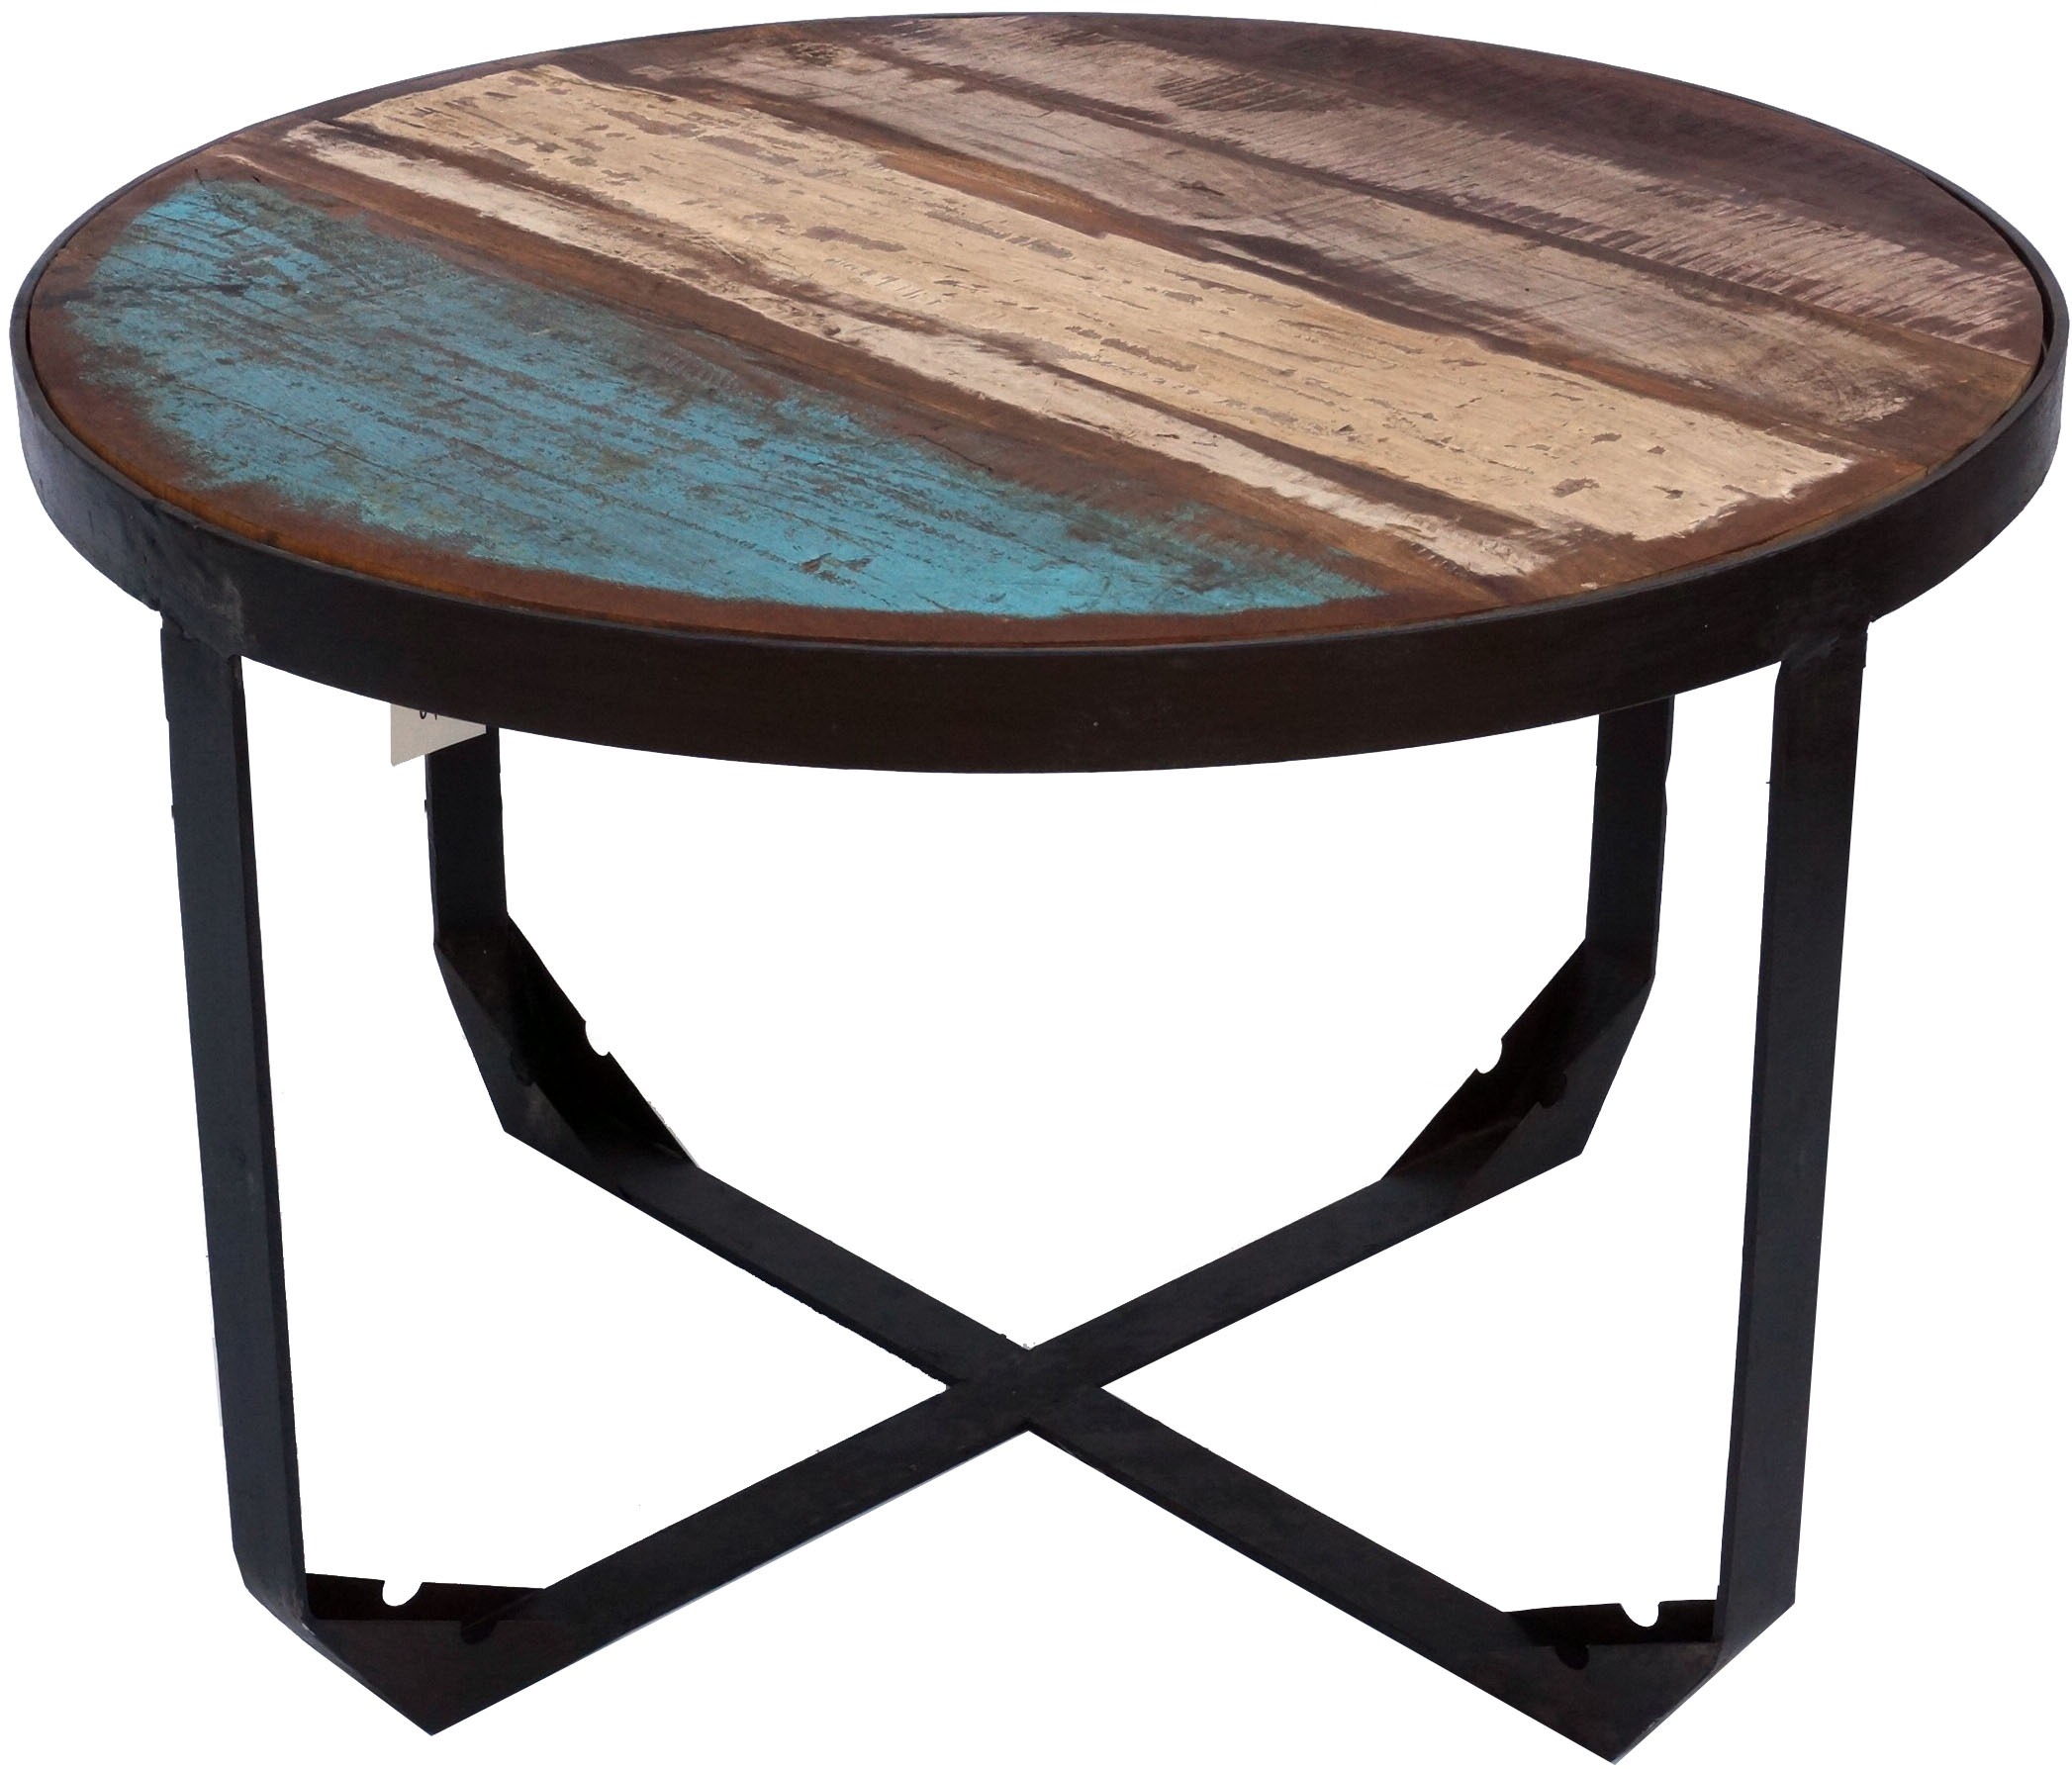 - Vintage Coffee Table, Coffee Table Made Of Metal And Recycled Wood